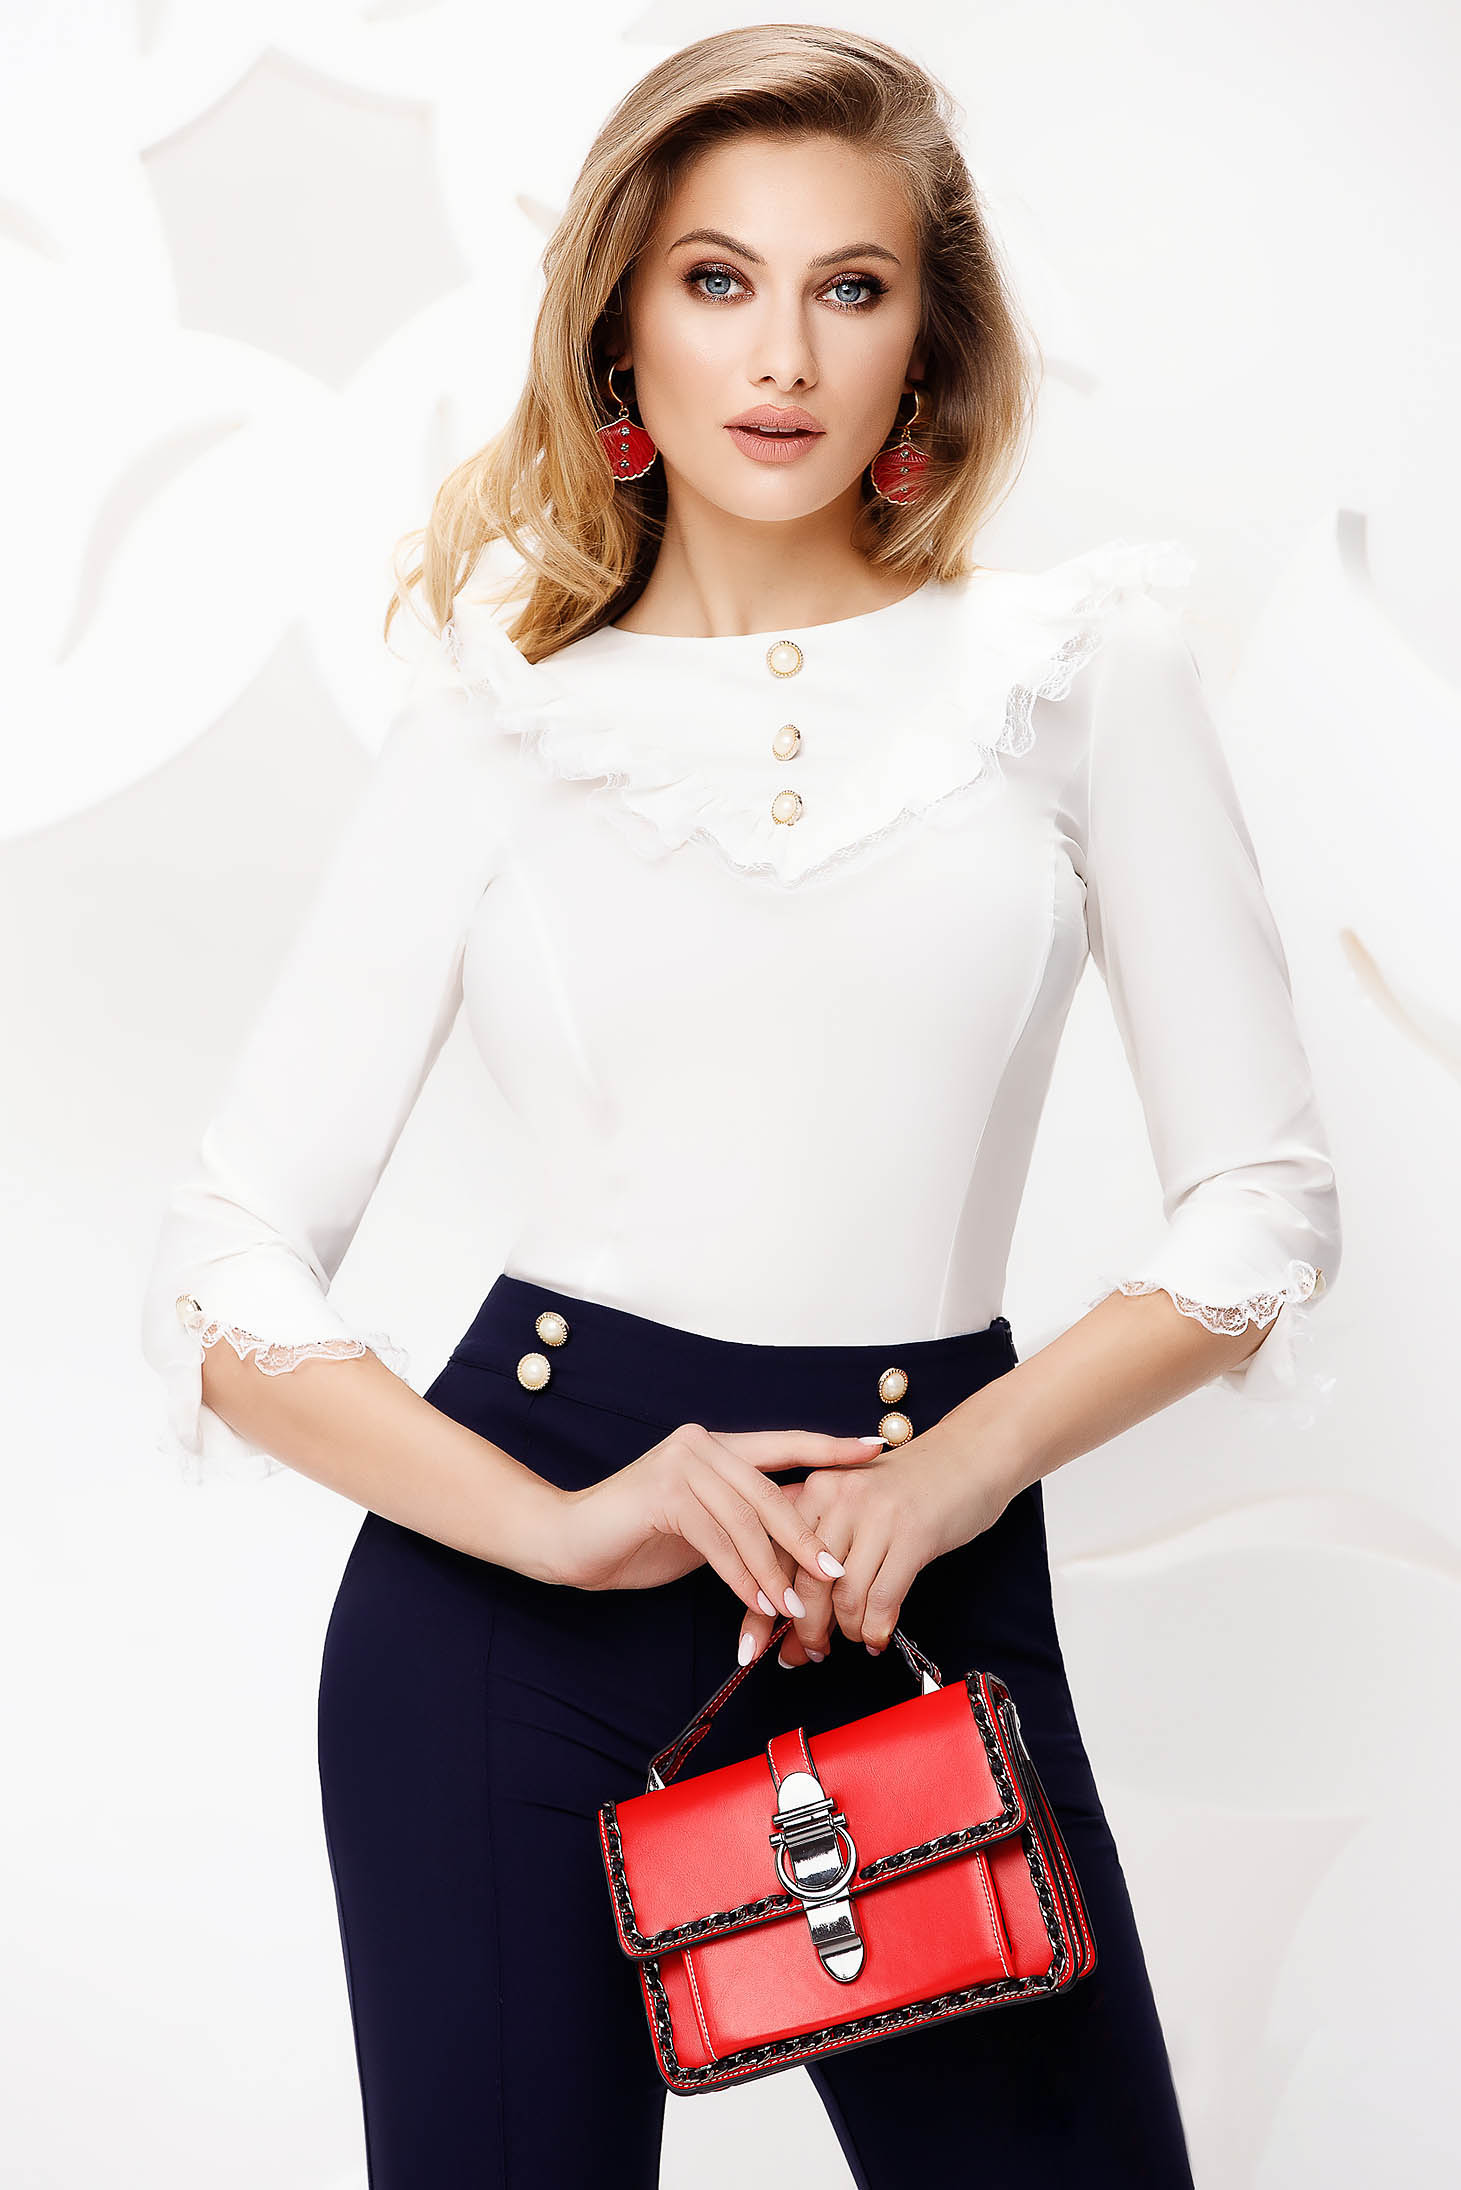 Women`s shirt office white tented ruffled collar with lace details